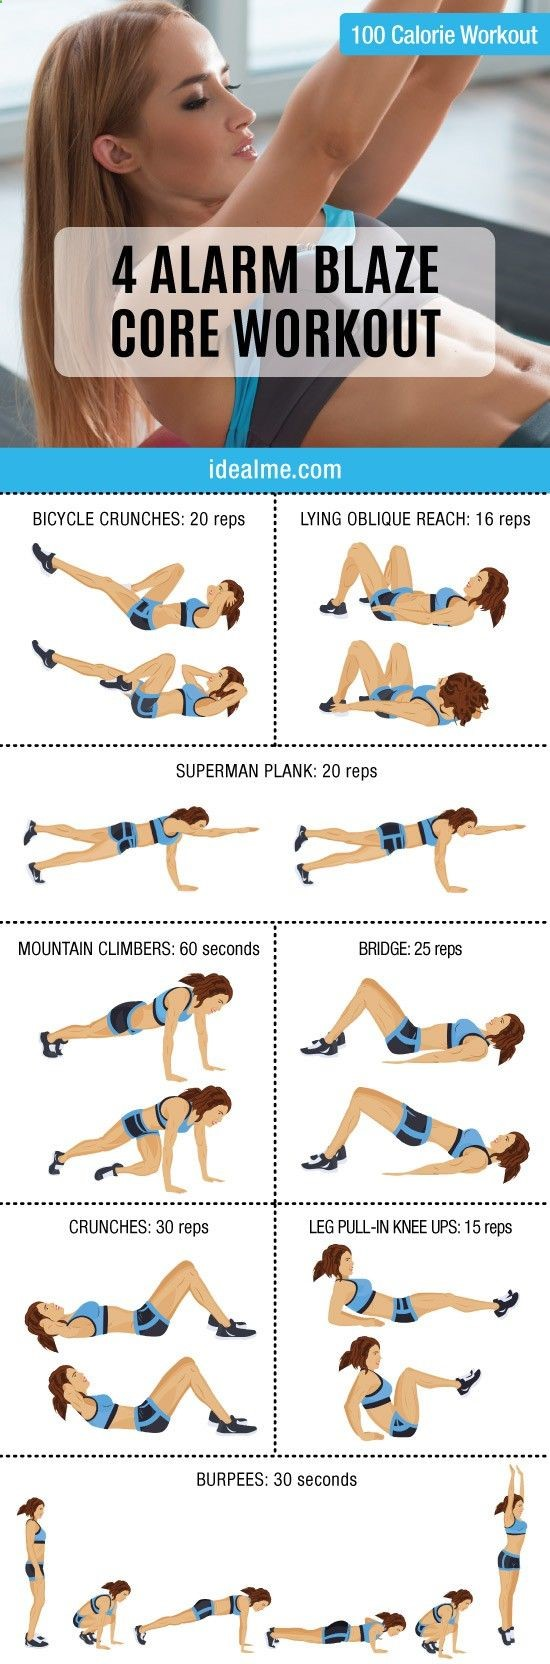 If you're a fan of challenging yourself AND you want a core that gets attention, this 4 Alarm Blaze Core workout combines the best core building exercises.